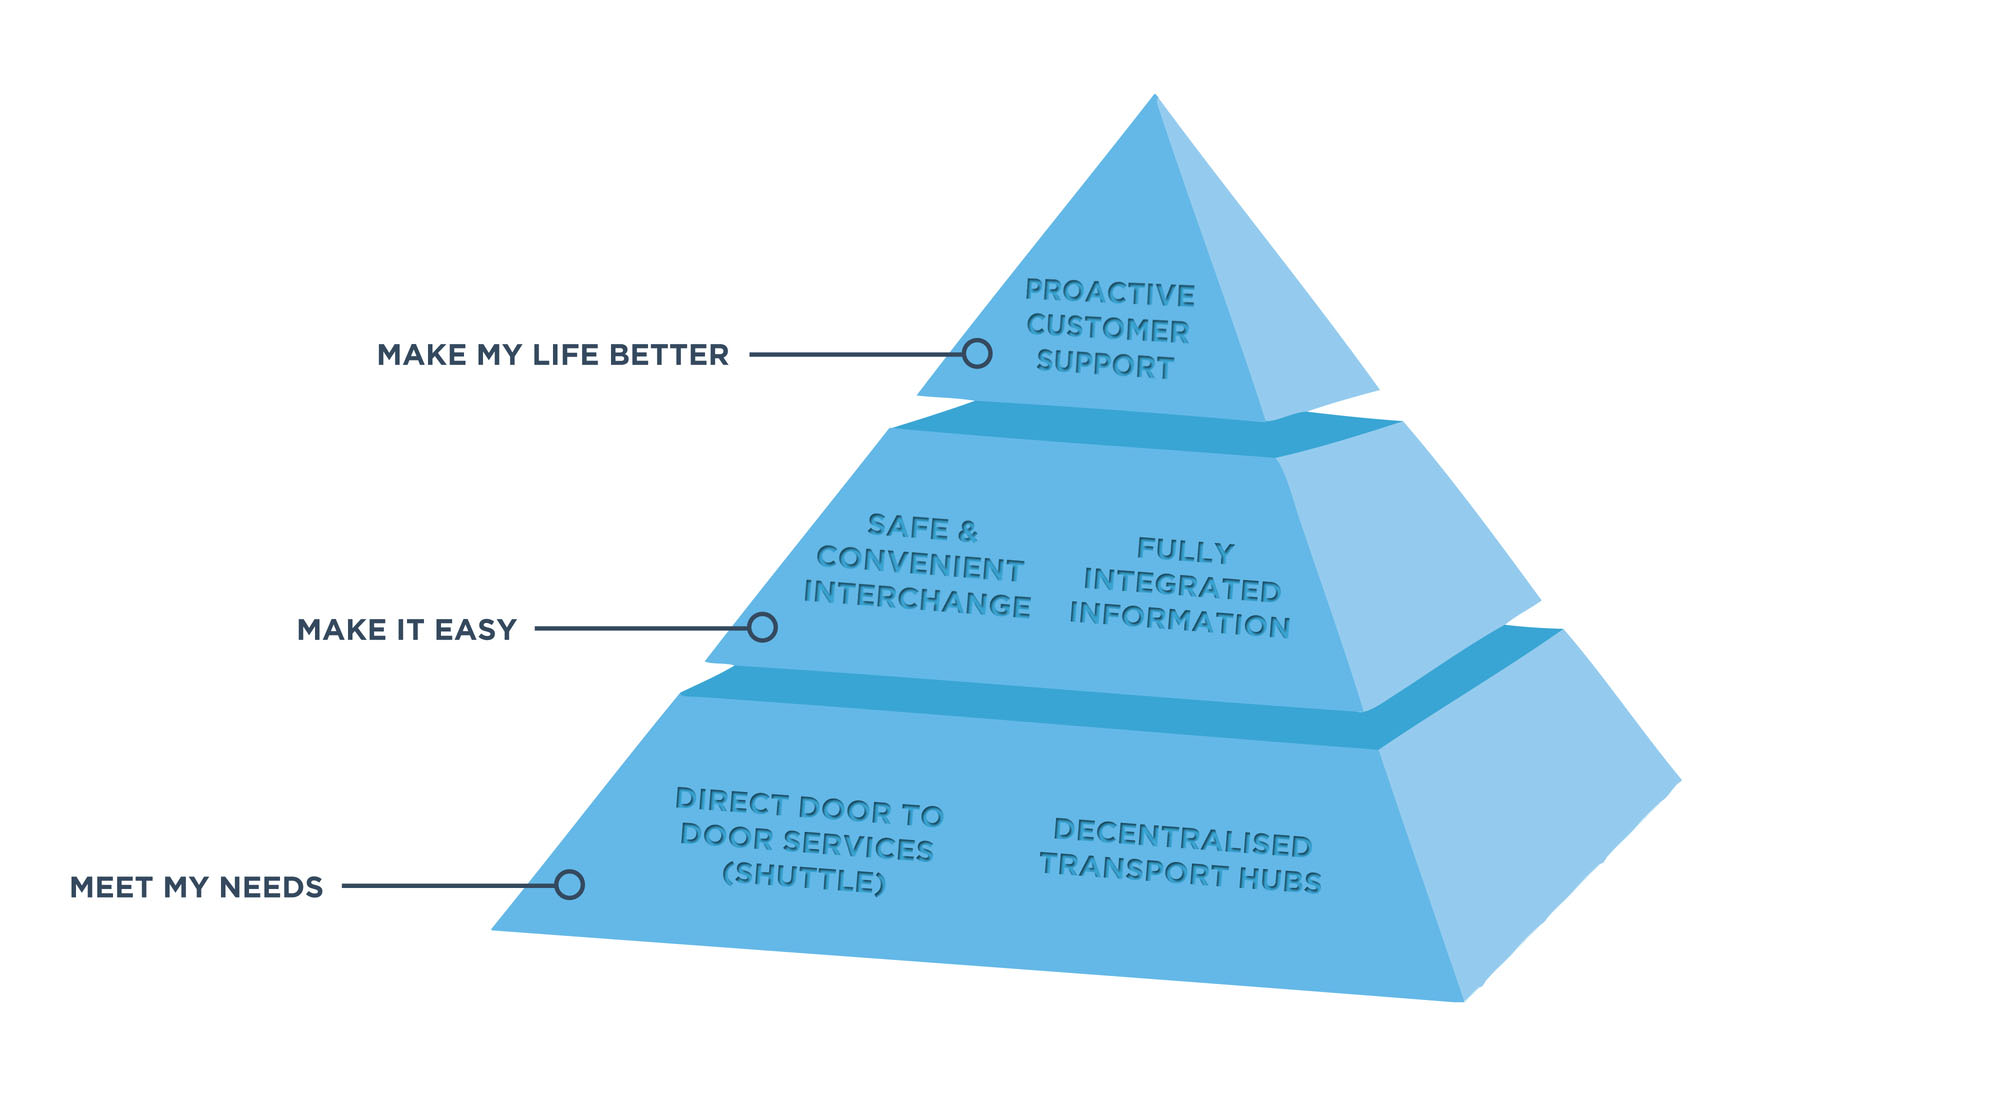 Proto customer needs prioritisation pyramid